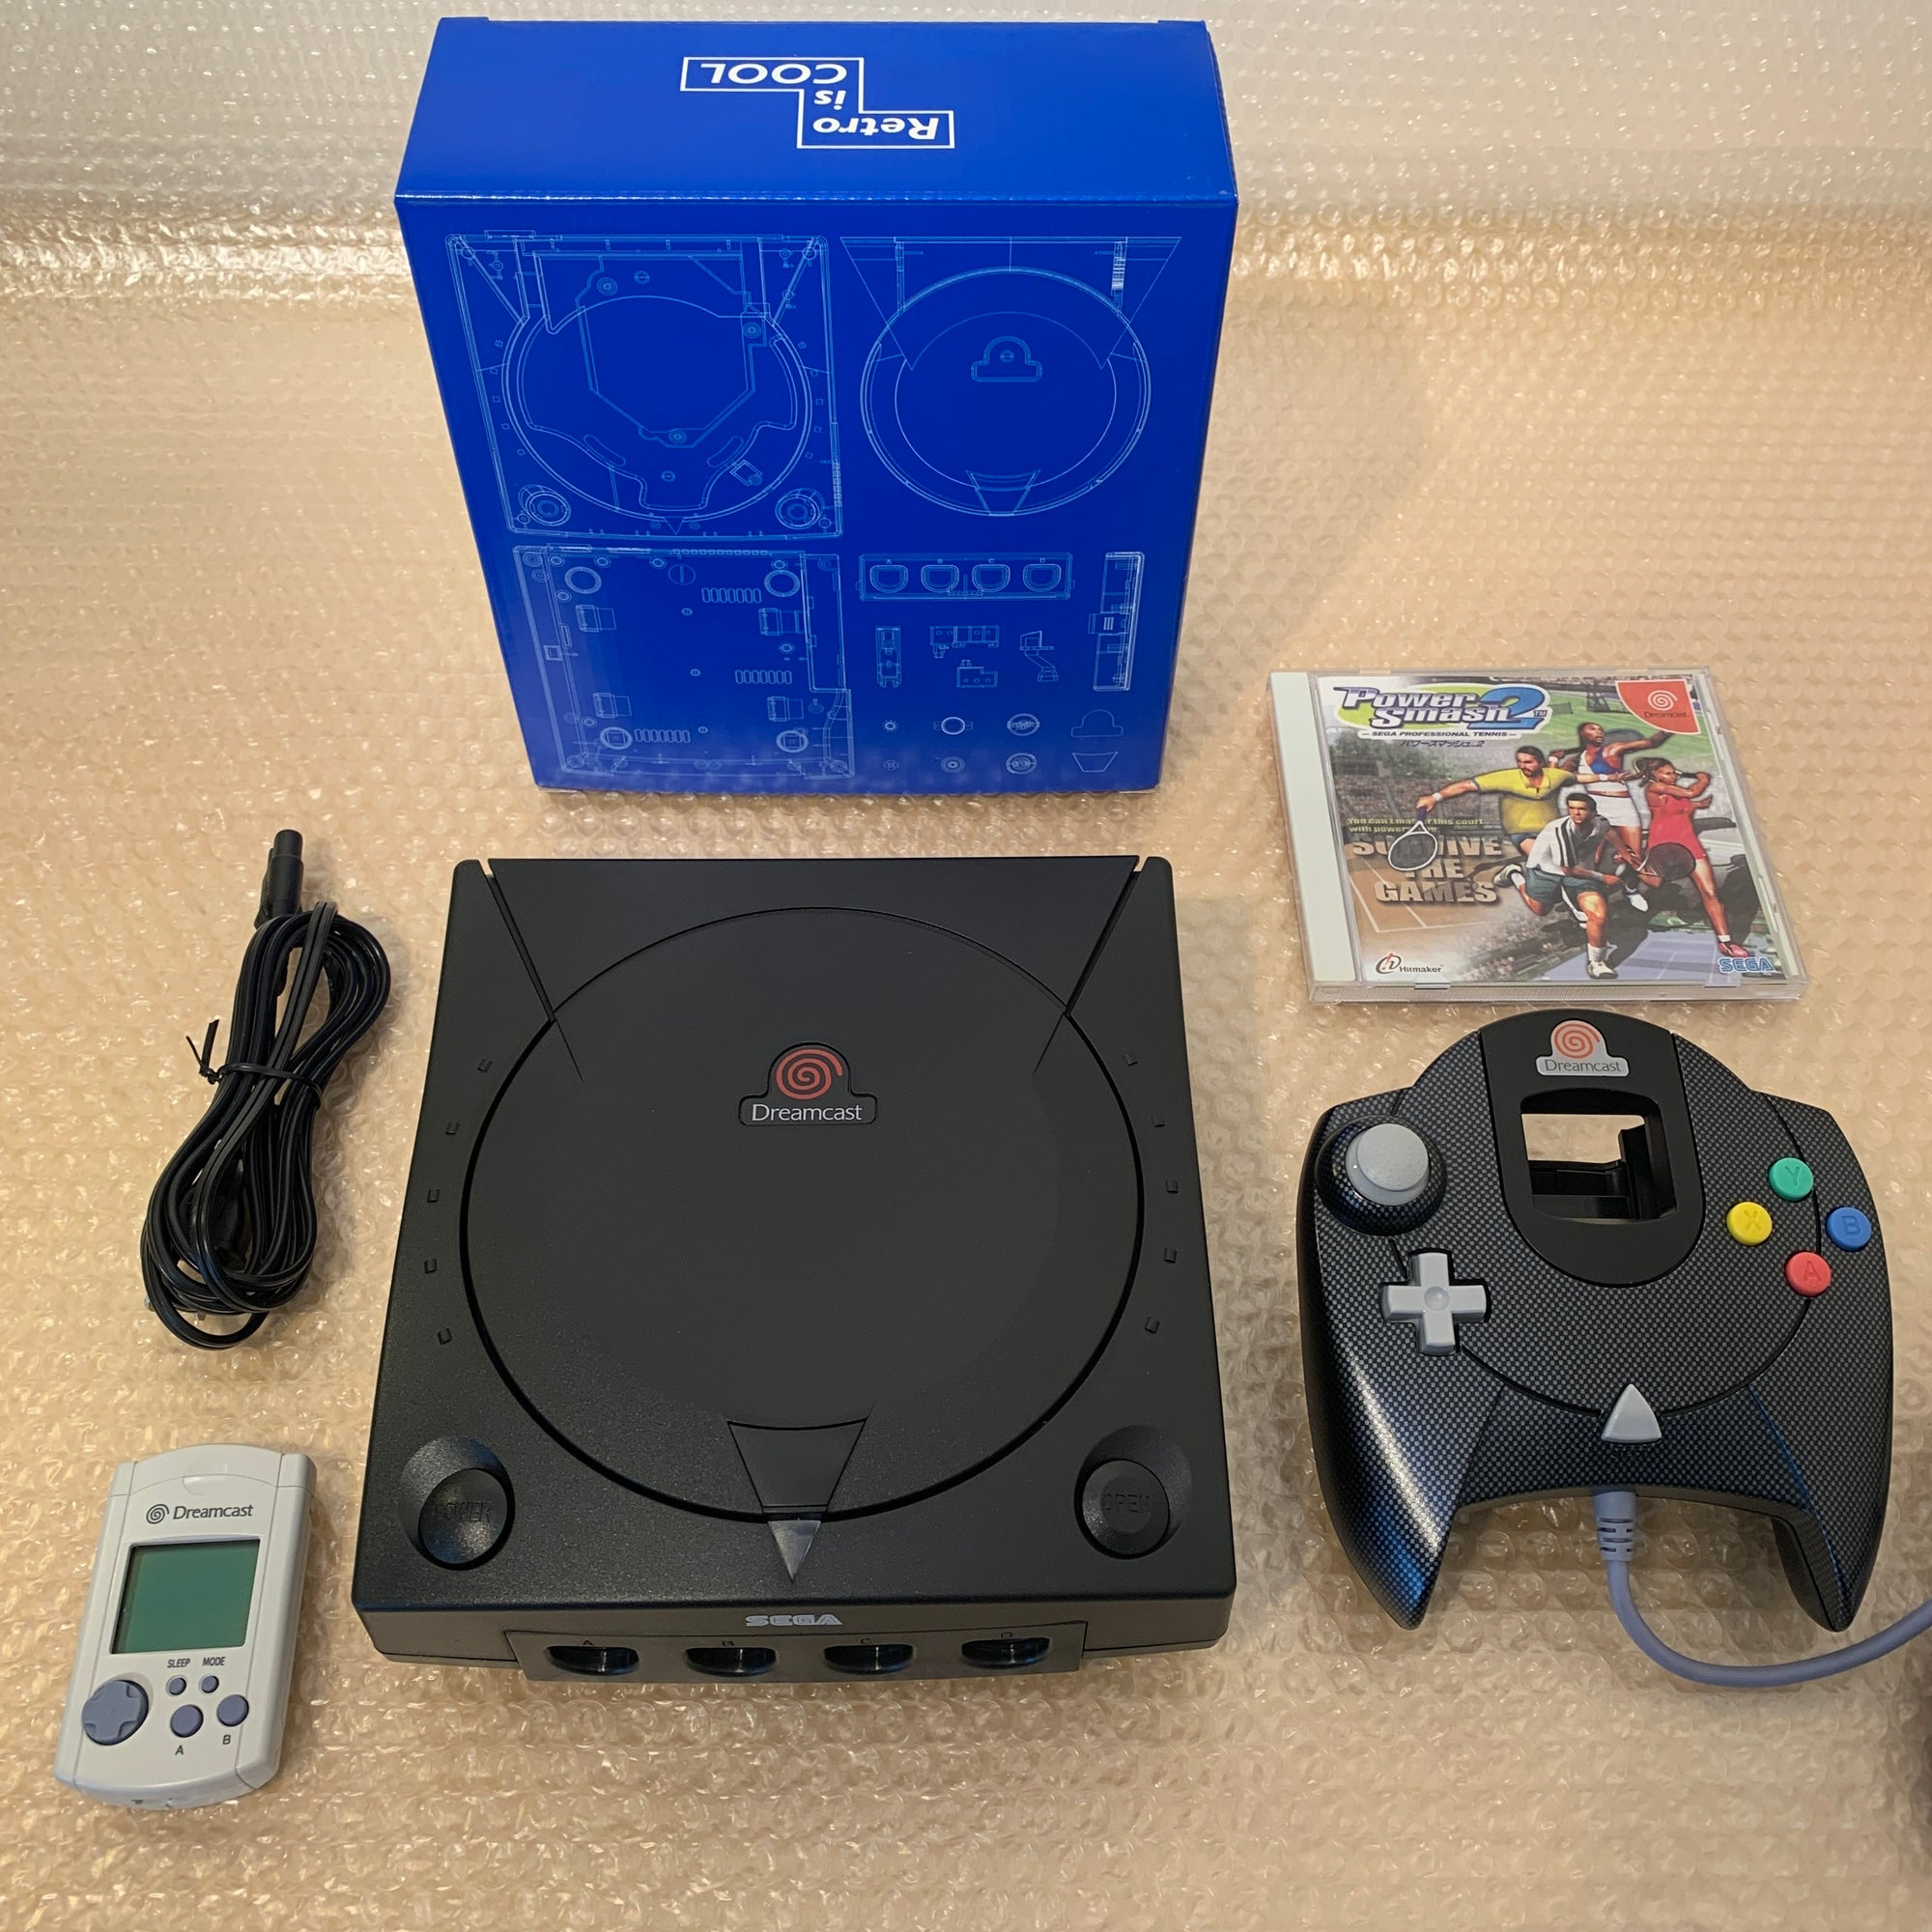 Black Dreamcast set with DCDigital (DCHDMI) kit - Region Free